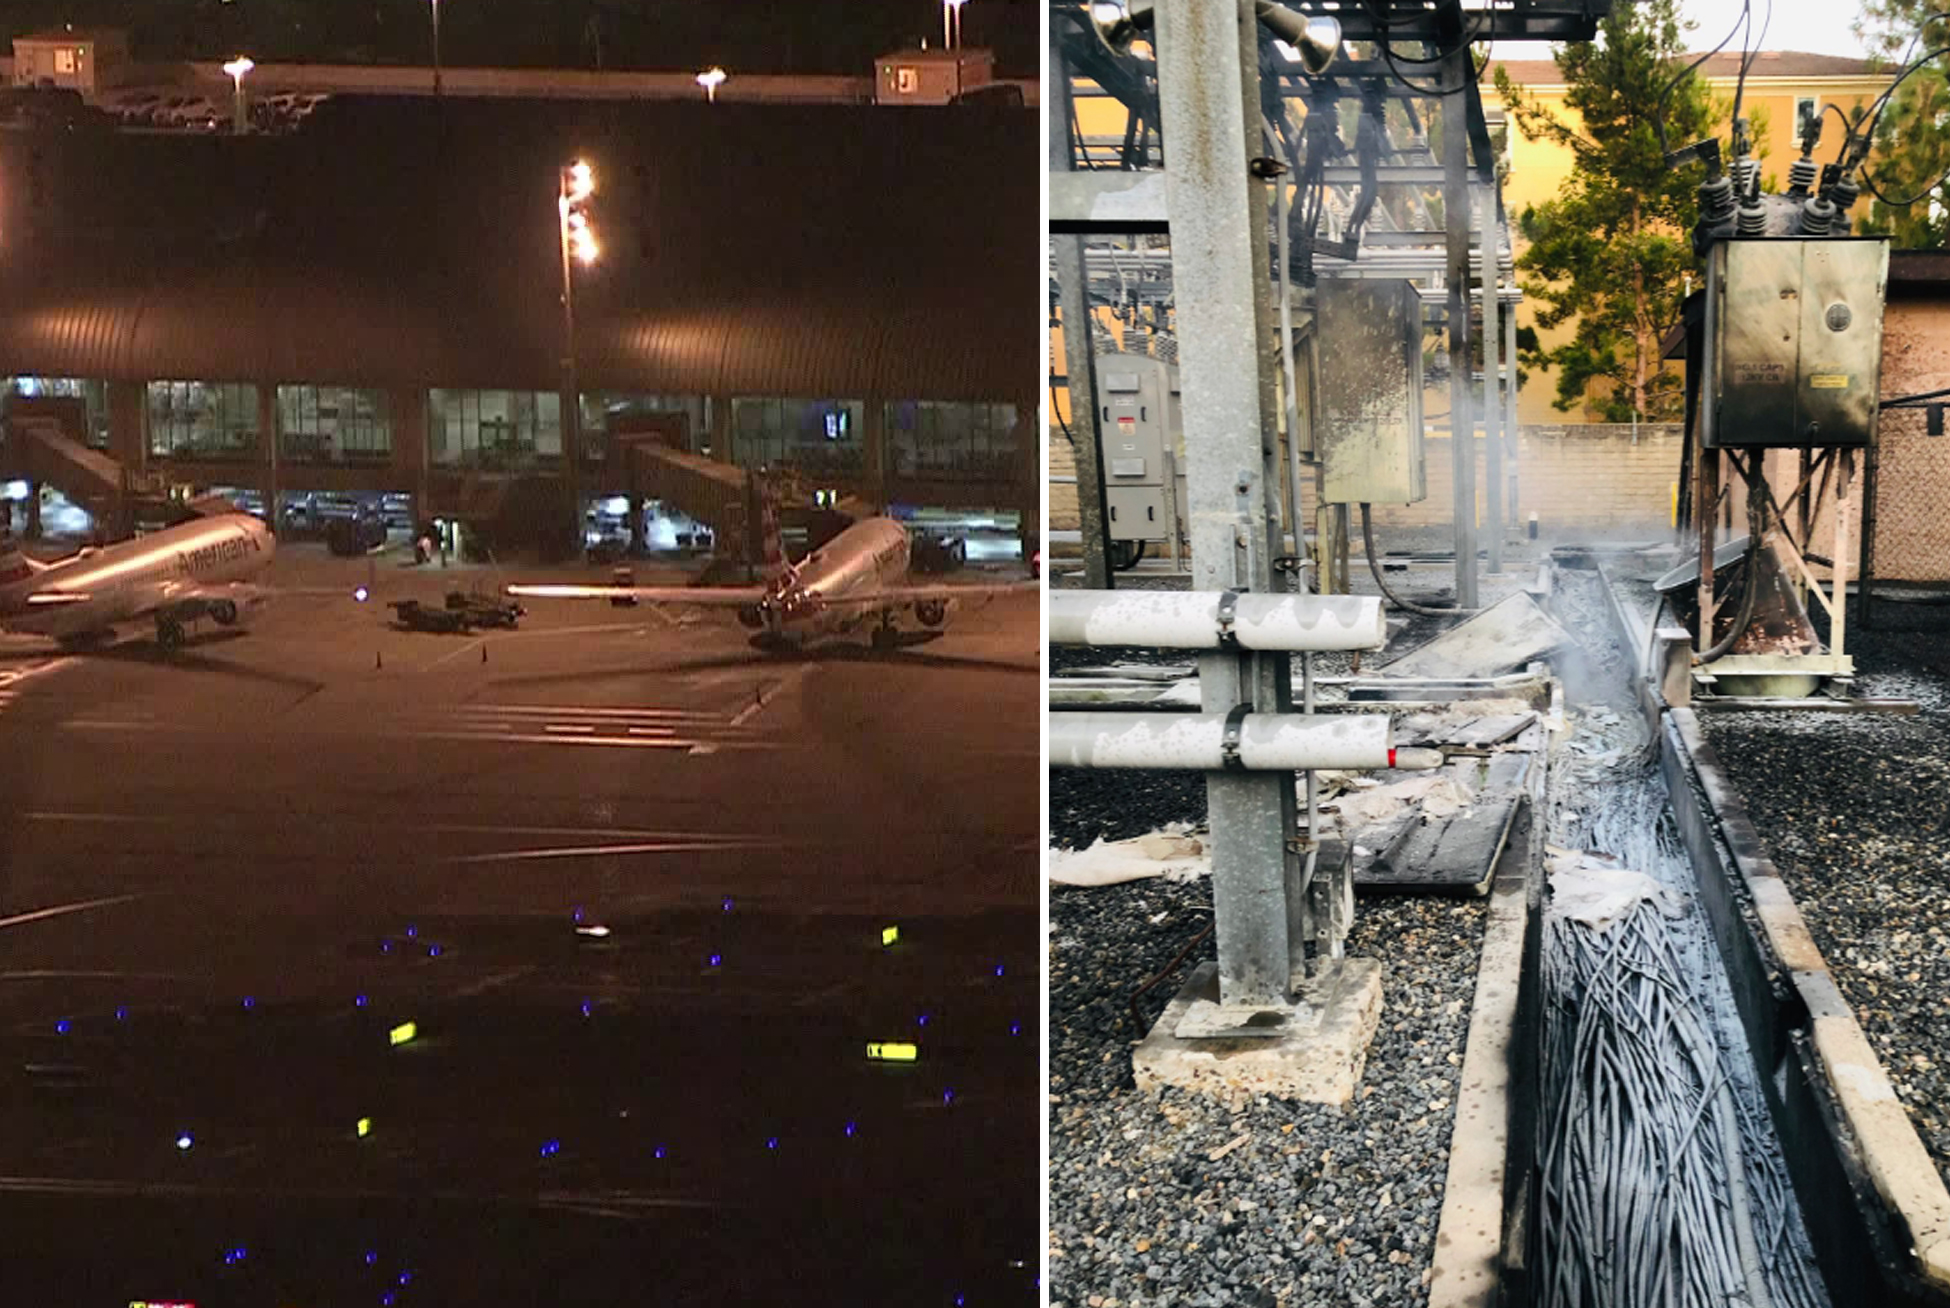 John Wayne Airport is seen on August 2, 2019. (Credit: KTLA) The aftermath of an electrical vault fire in Irvine is seen on the same day. (Credit: Orange County Fire Authority)